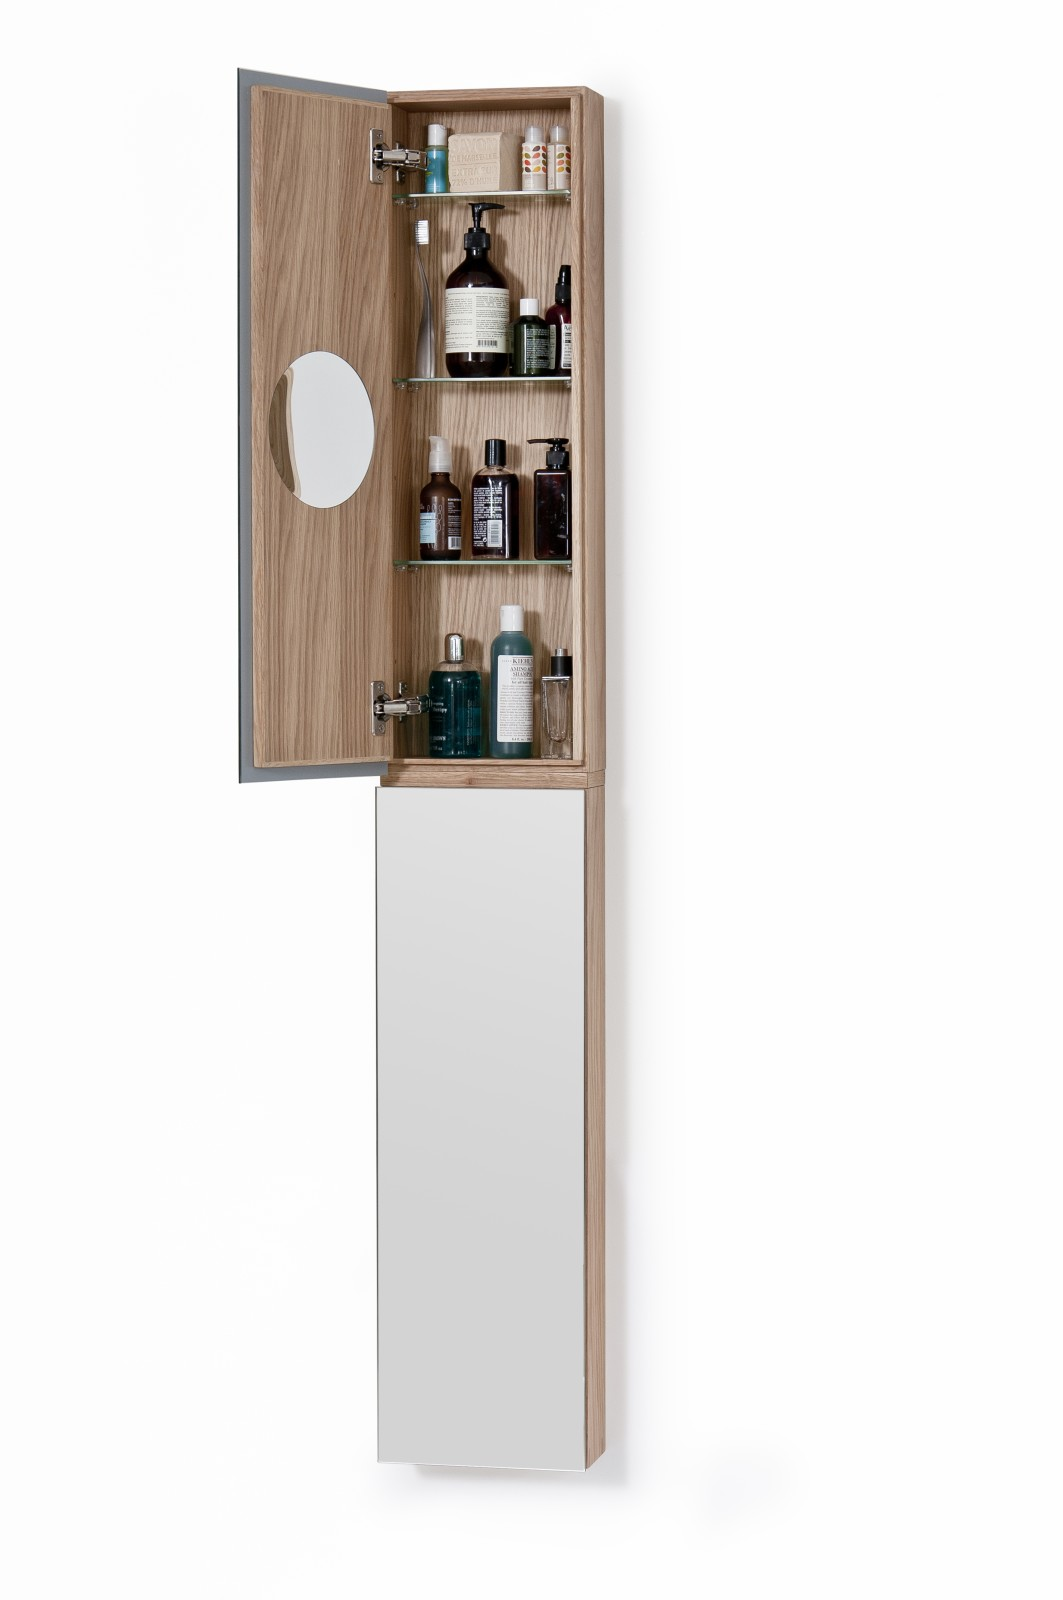 Cabinet Tall 1622 Zone Cabinet Tall 1622 Zone - Natural Oak